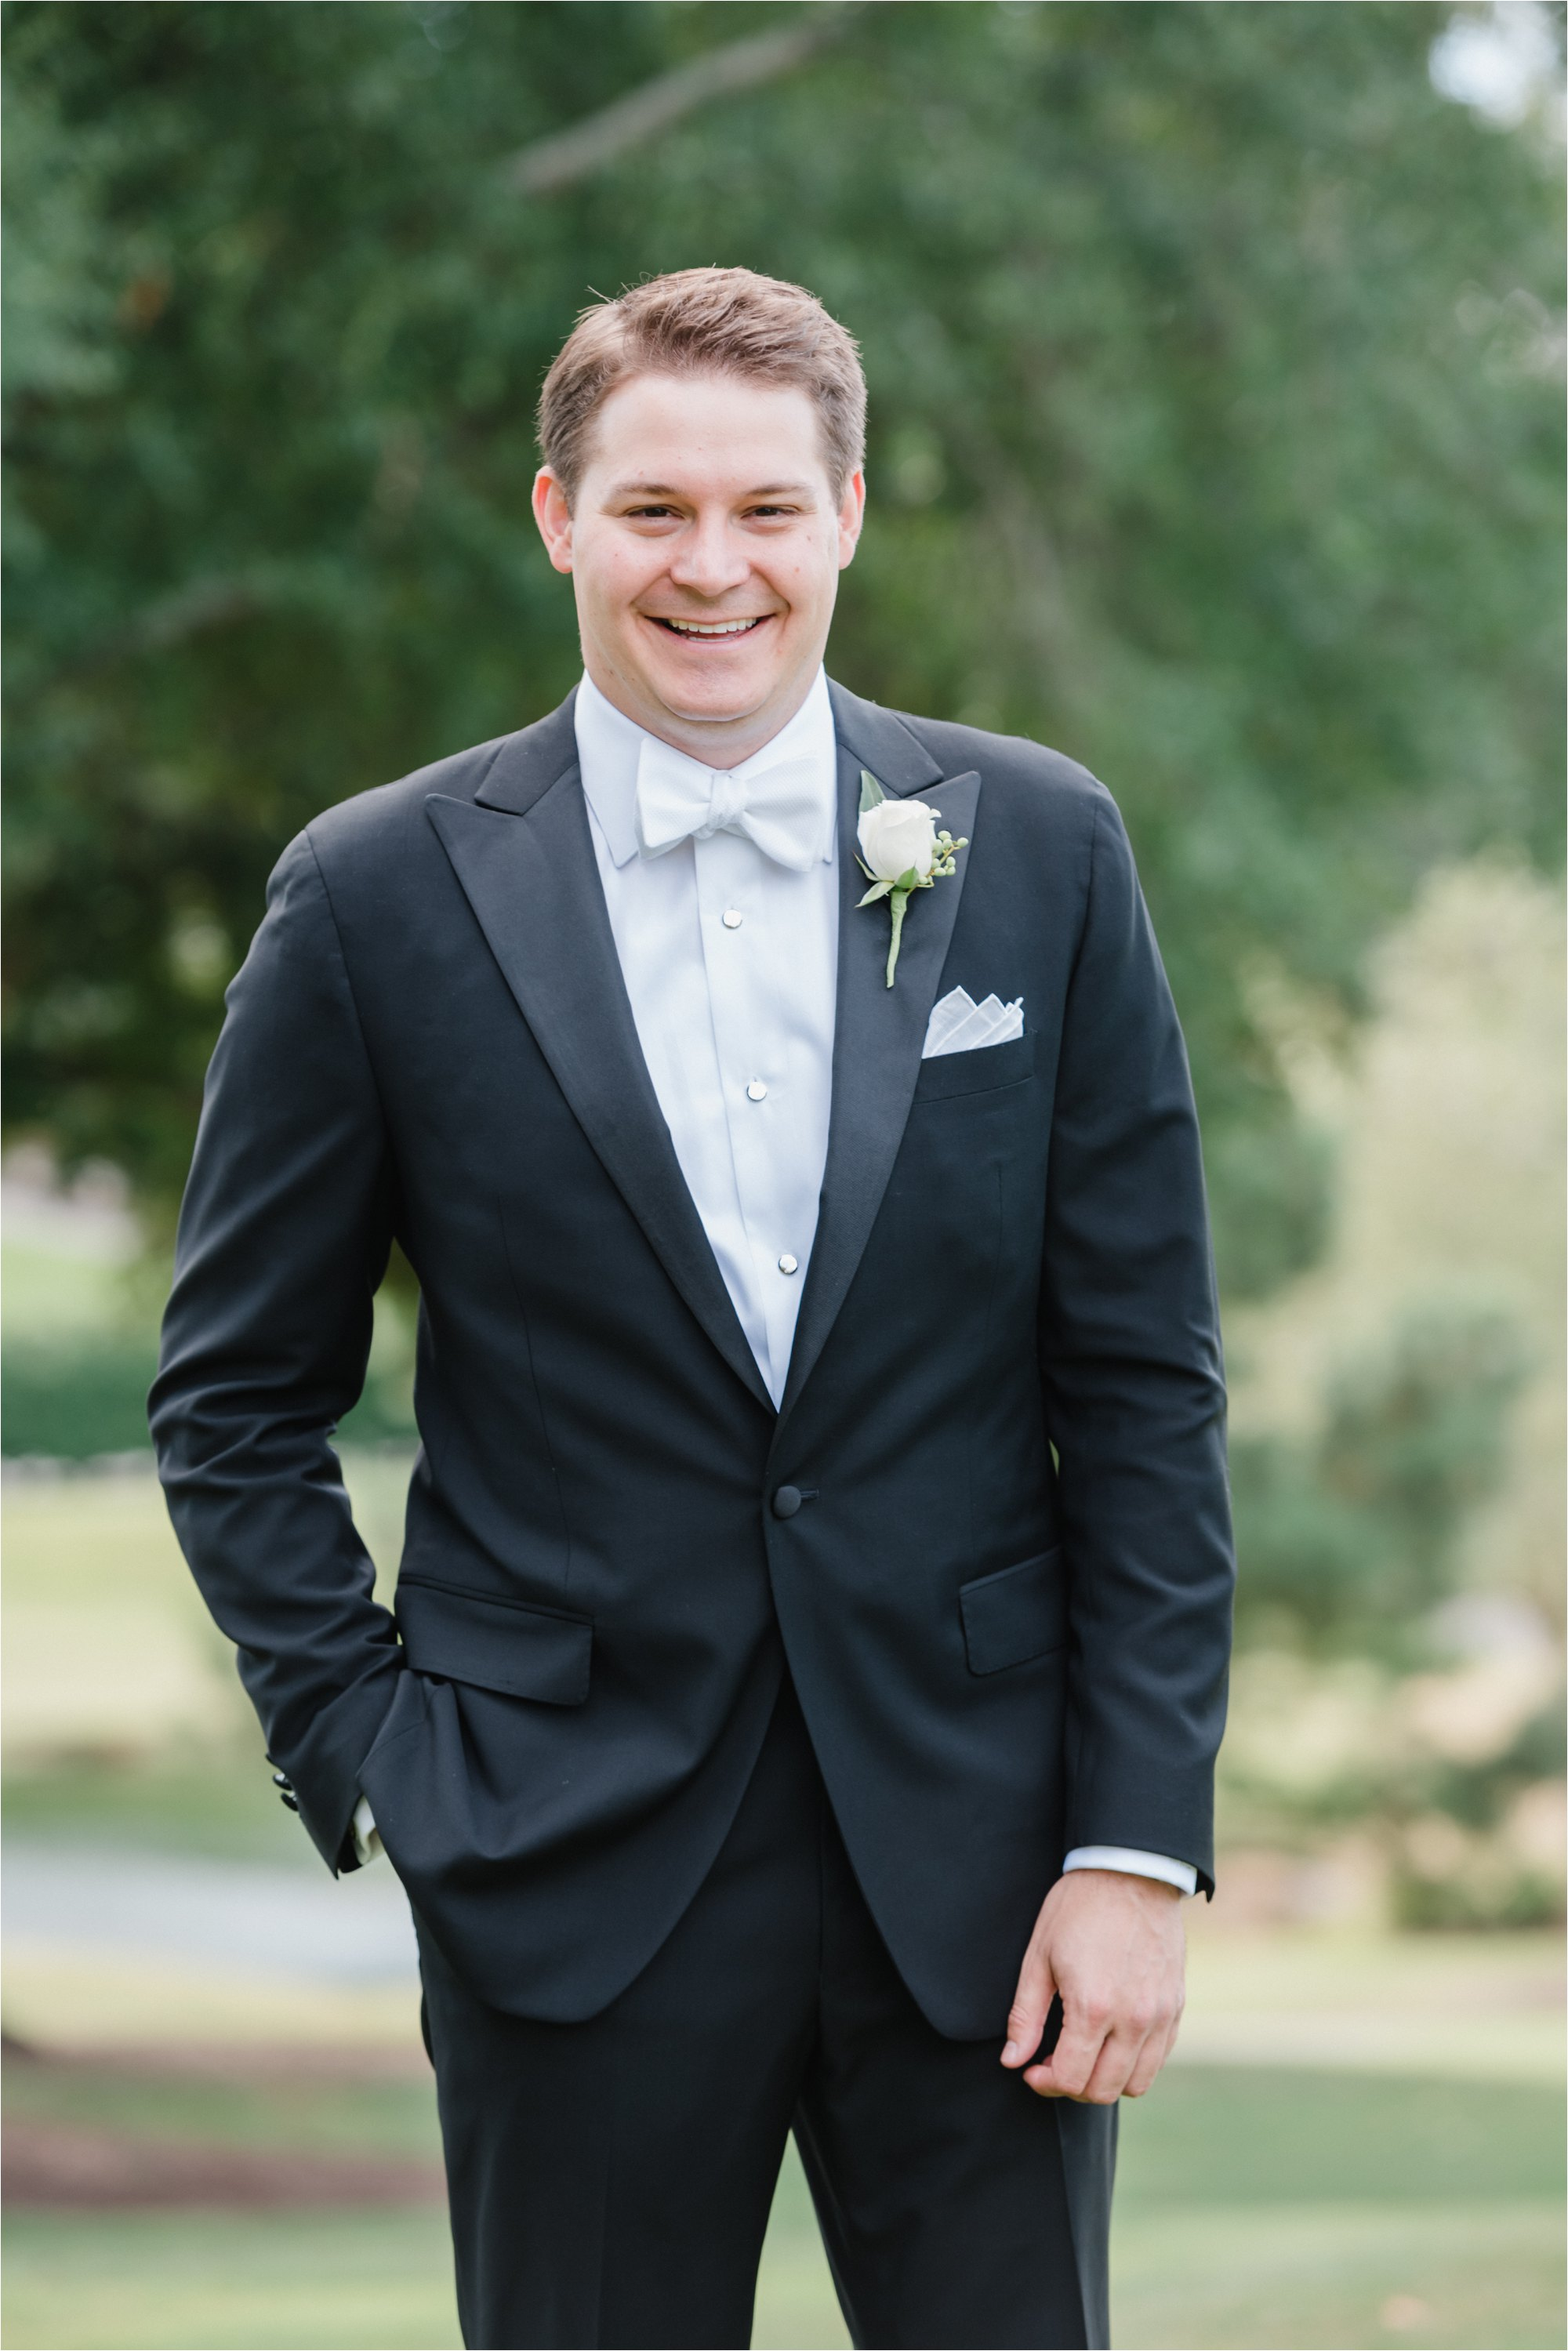 Groom at Greensboro Country Club